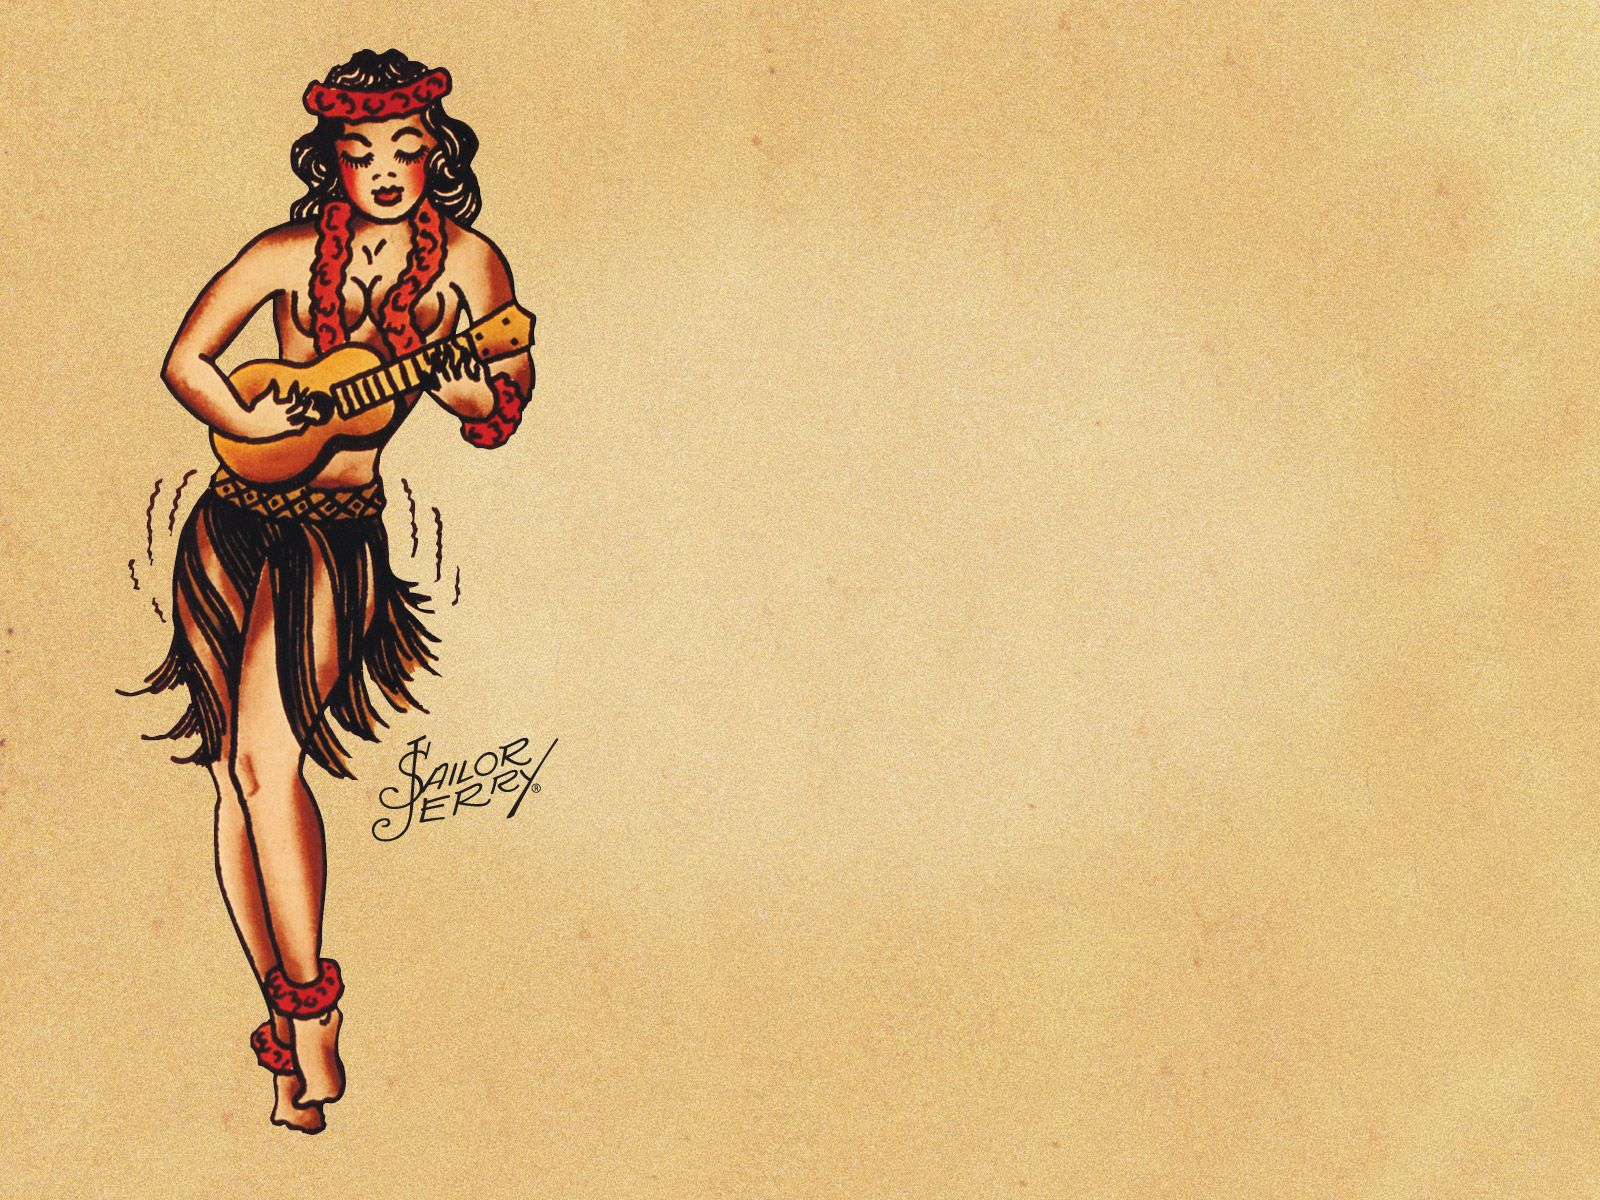 Sailor Jerry Wallpaper | loopele.com